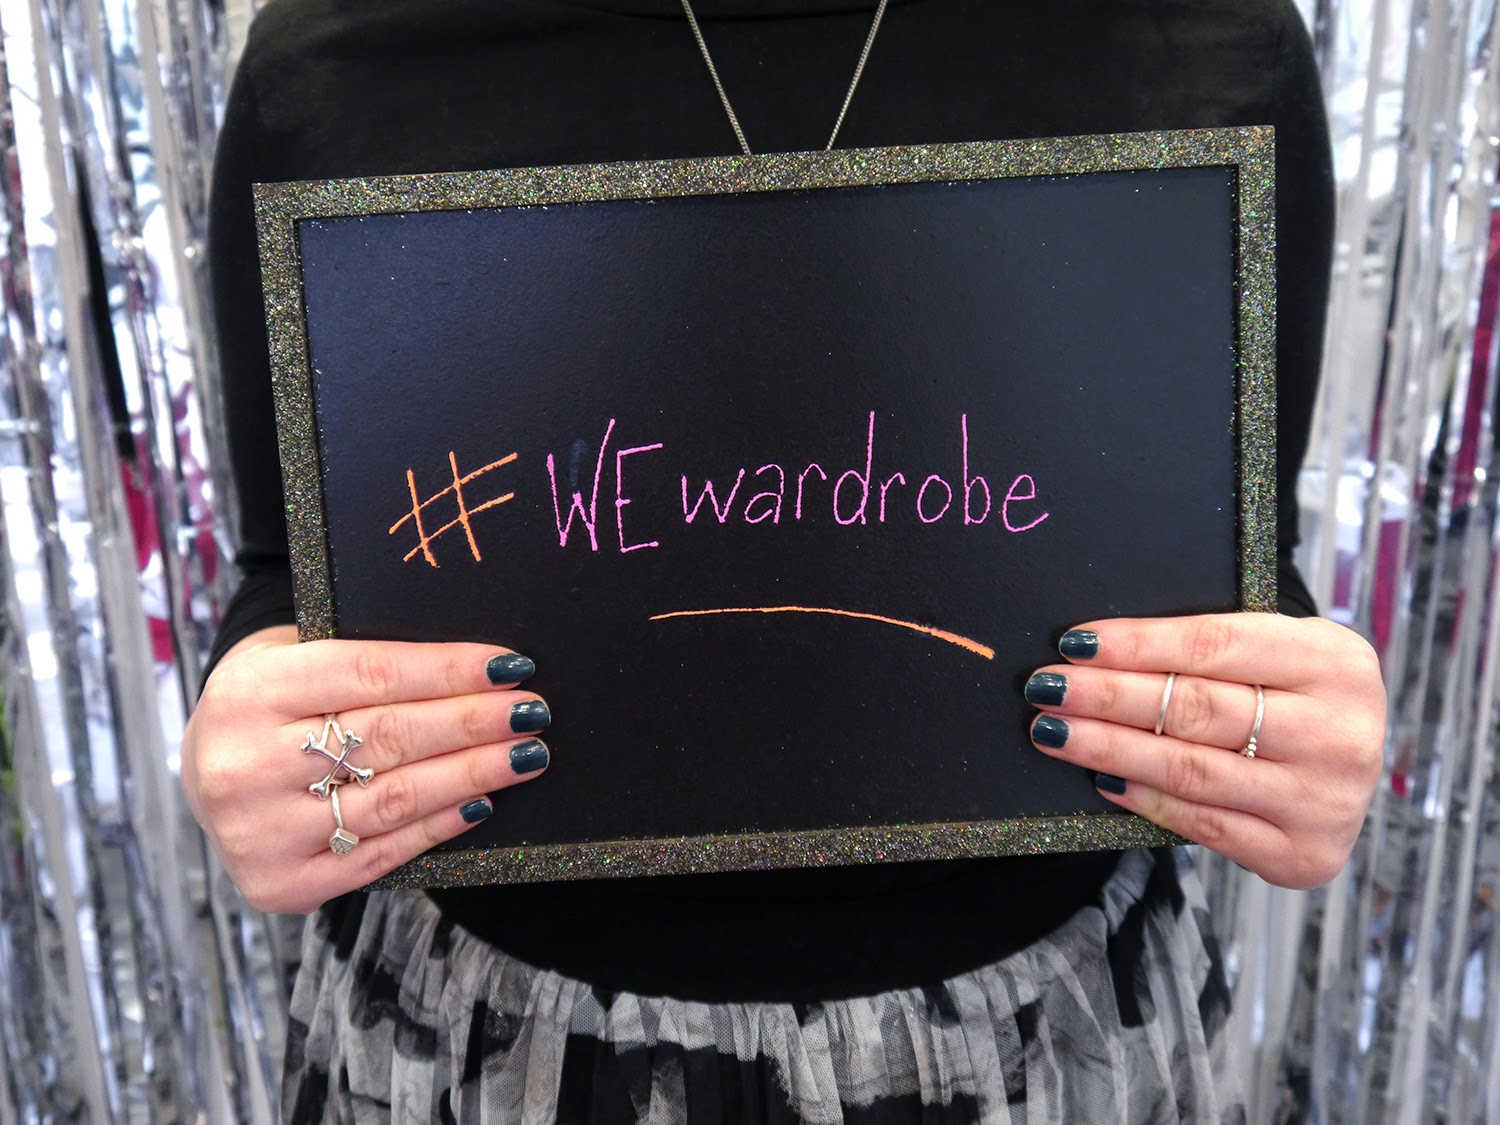 What Helen Wore, Outfit, Scottish Blogger, Wear Eponymous, The Wardrobe, Pop Up Shop, #WEwardrobe, Reg Head, ginger, chalkboard, photobooth, Bloody Mary Metal Crossbones Ring